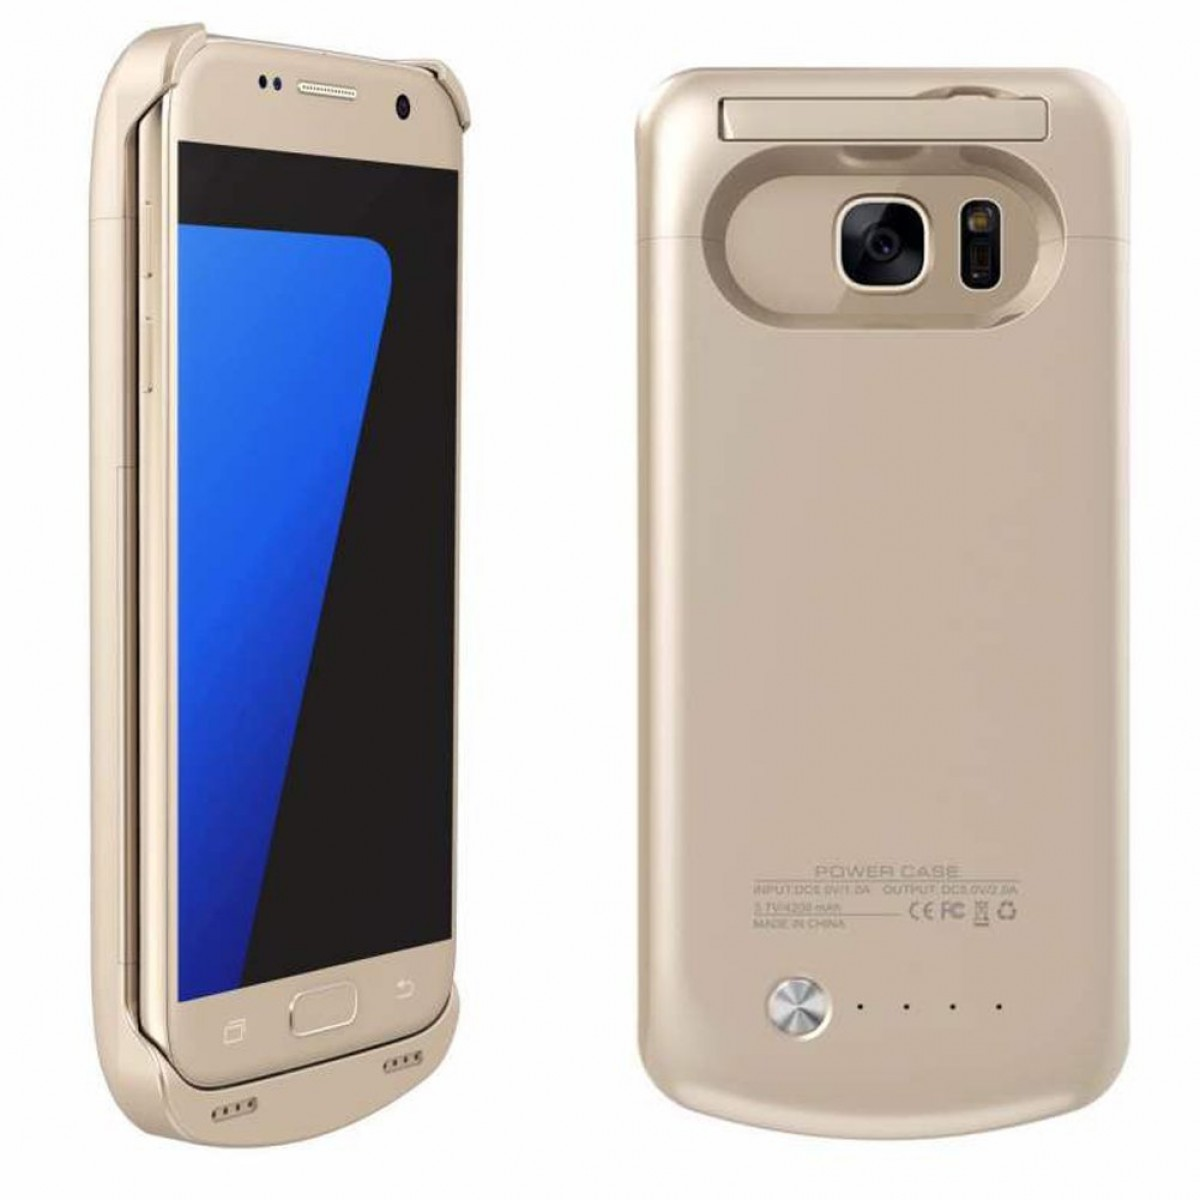 huge selection of f913c dbbf6 Galaxy S7 Battery Case,Caka 4500 Mah Backup External Battery Charger Case  for Samsung Galaxy S7 Portable Backup Power Bank Case with Kickstand - ...